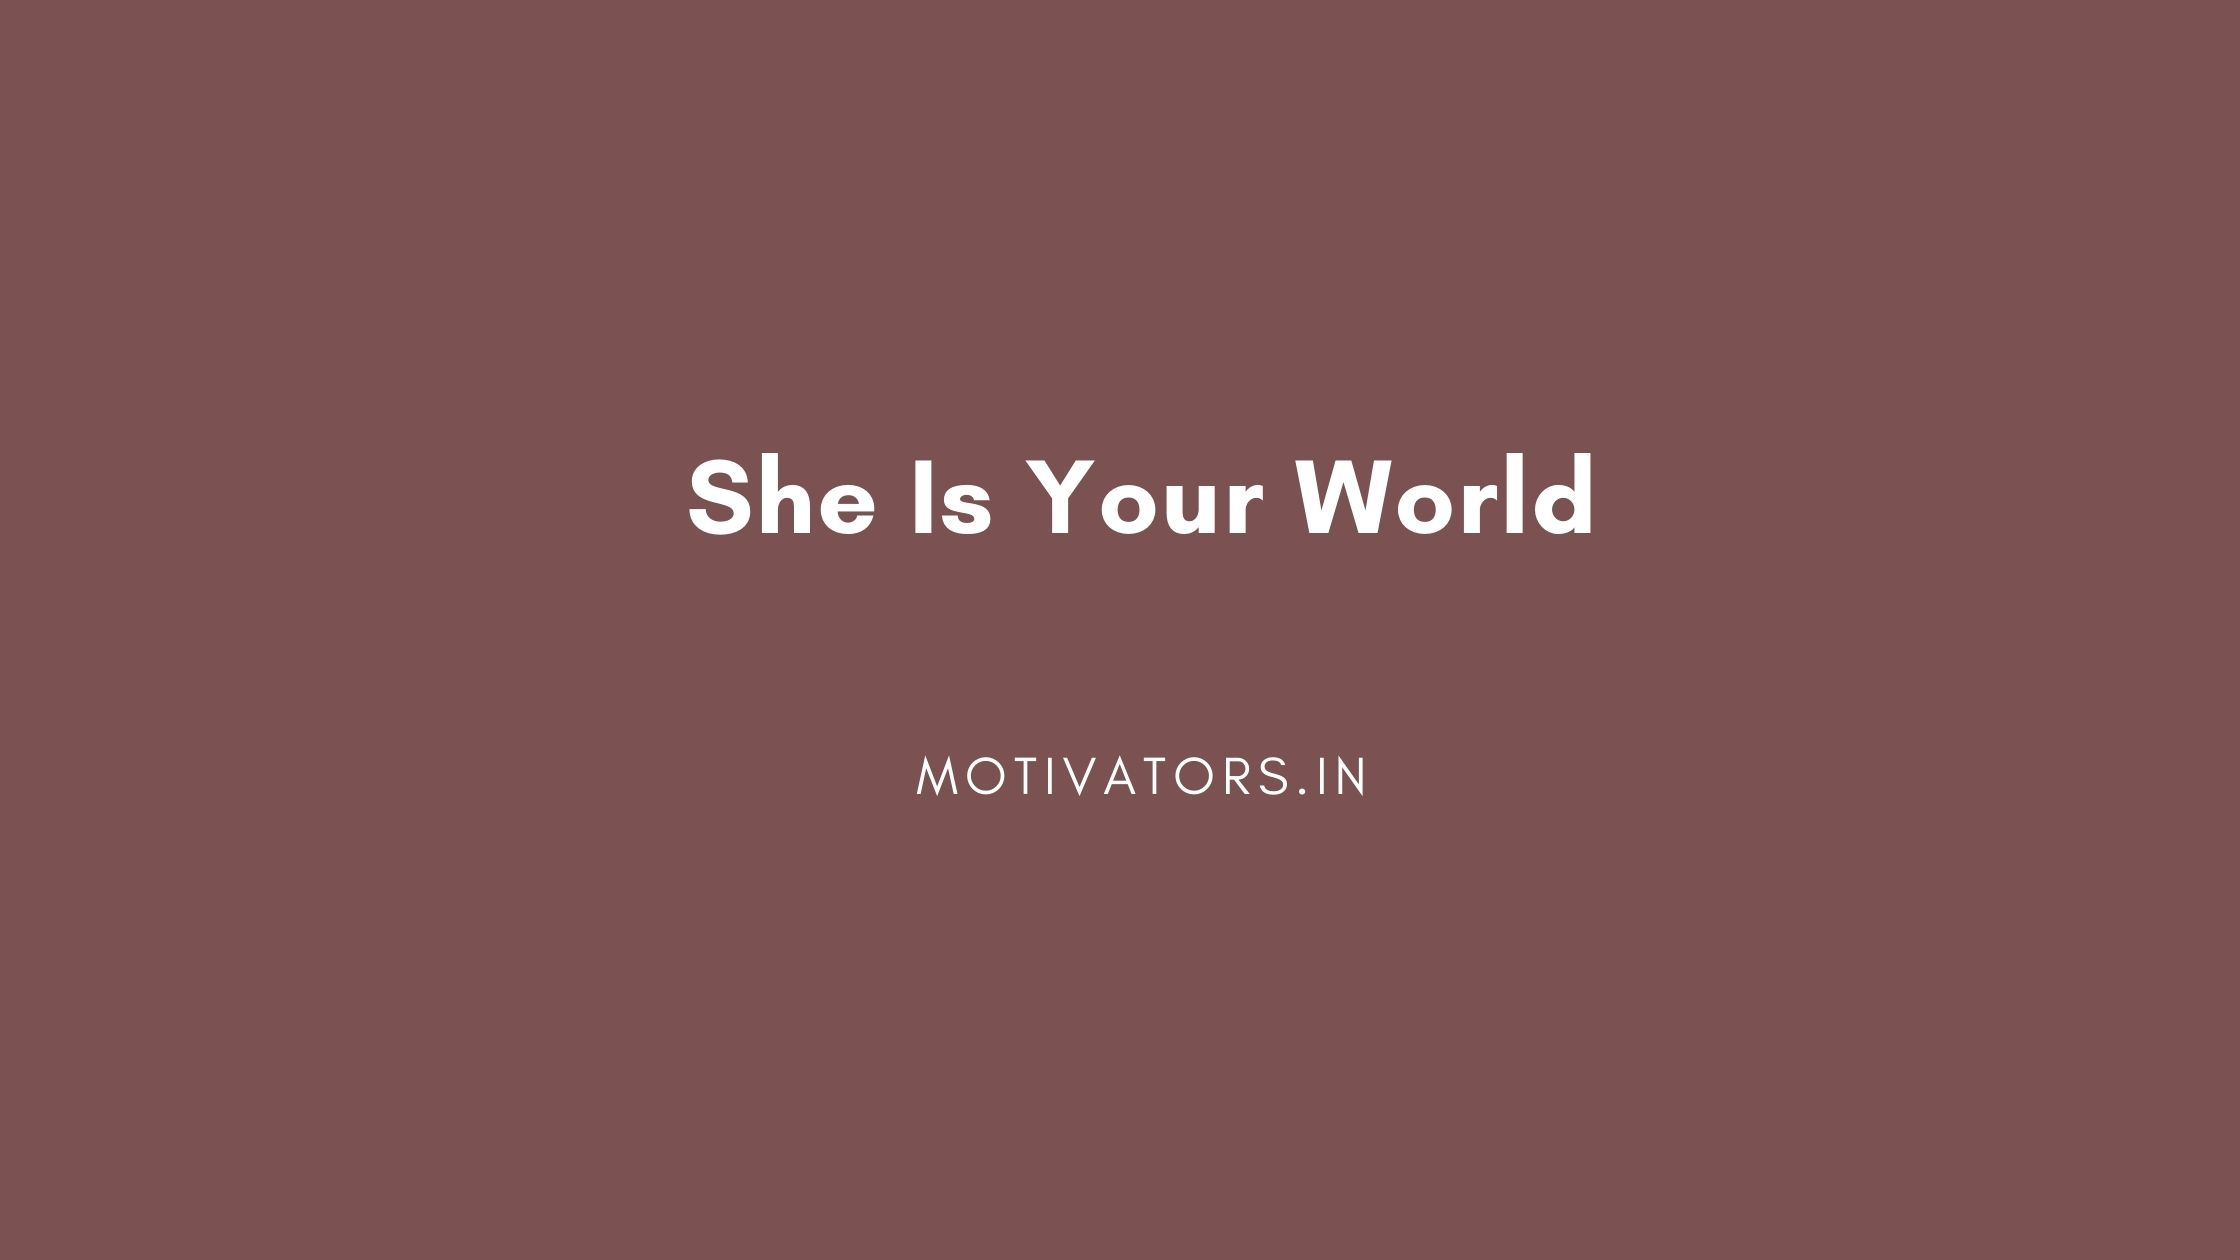 She Is Your World